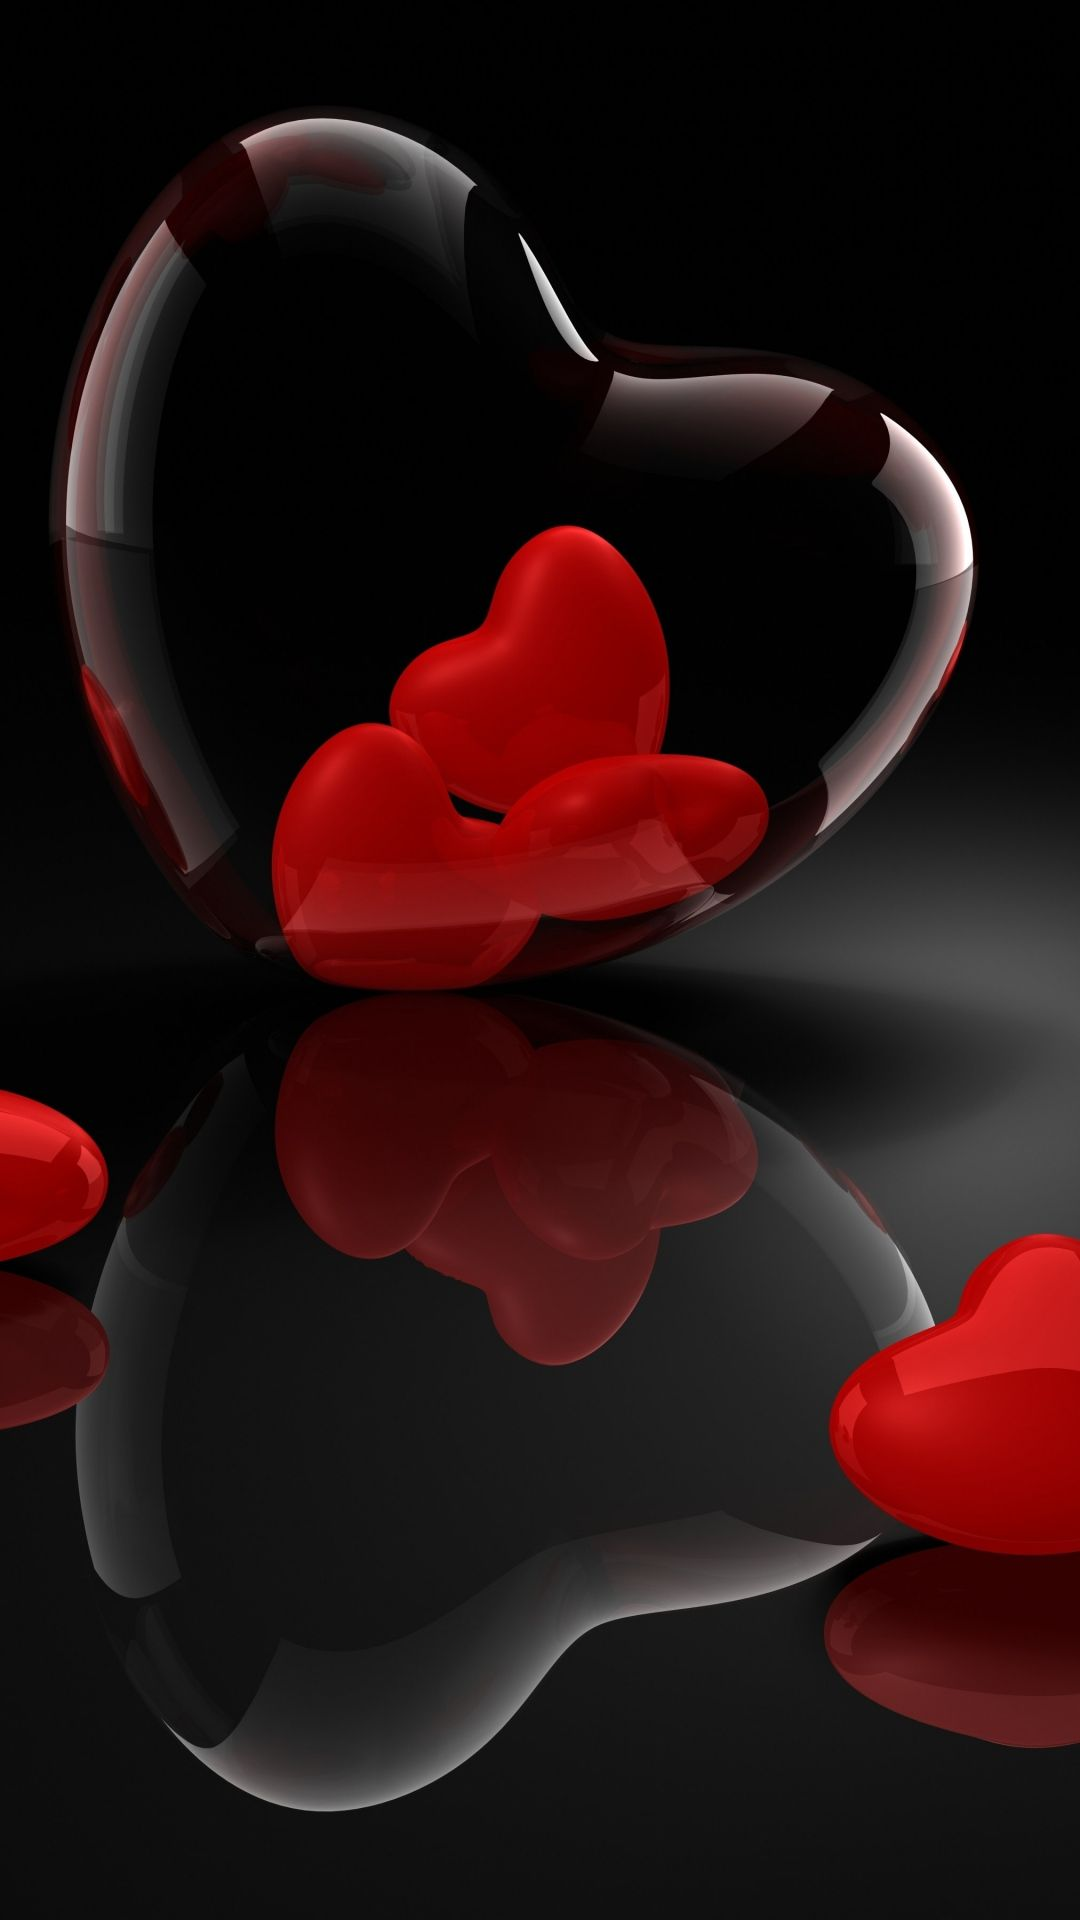 Heart Glass 3d Reflection Iphone 8 Wallpapers Heart Wallpaper Love Wallpaper Abstract